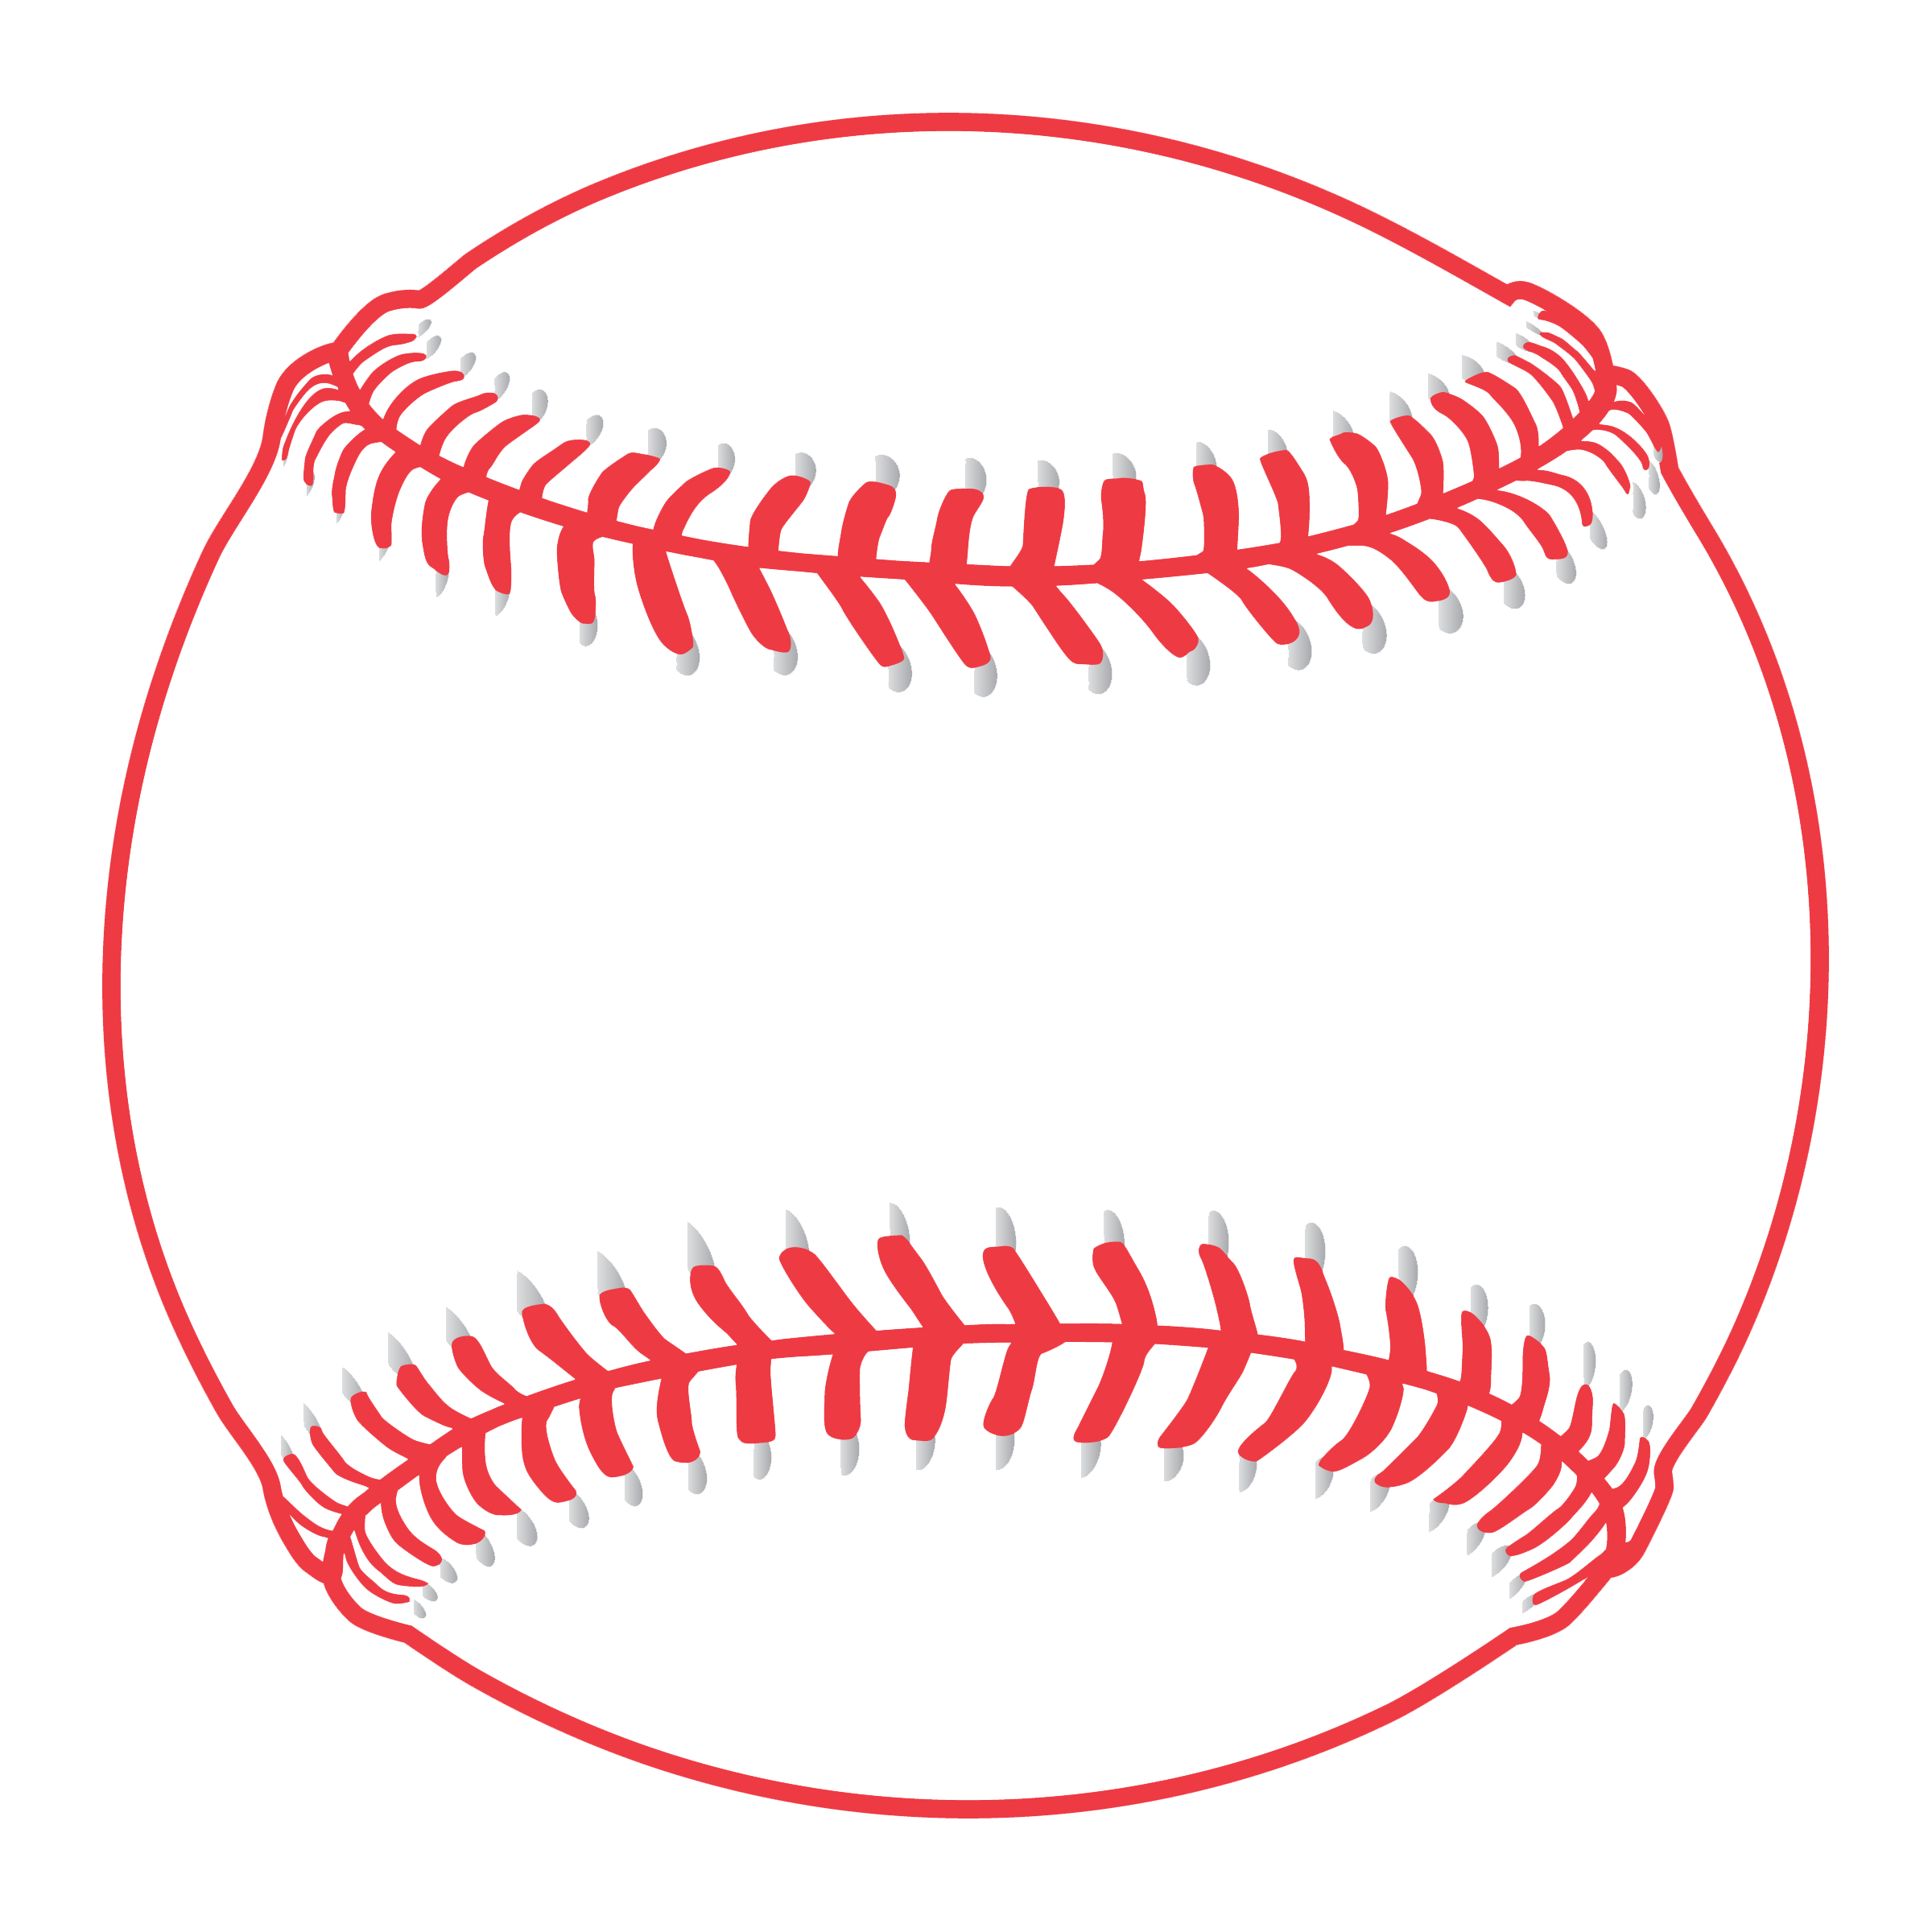 Web icons png. Baseball clipart icon